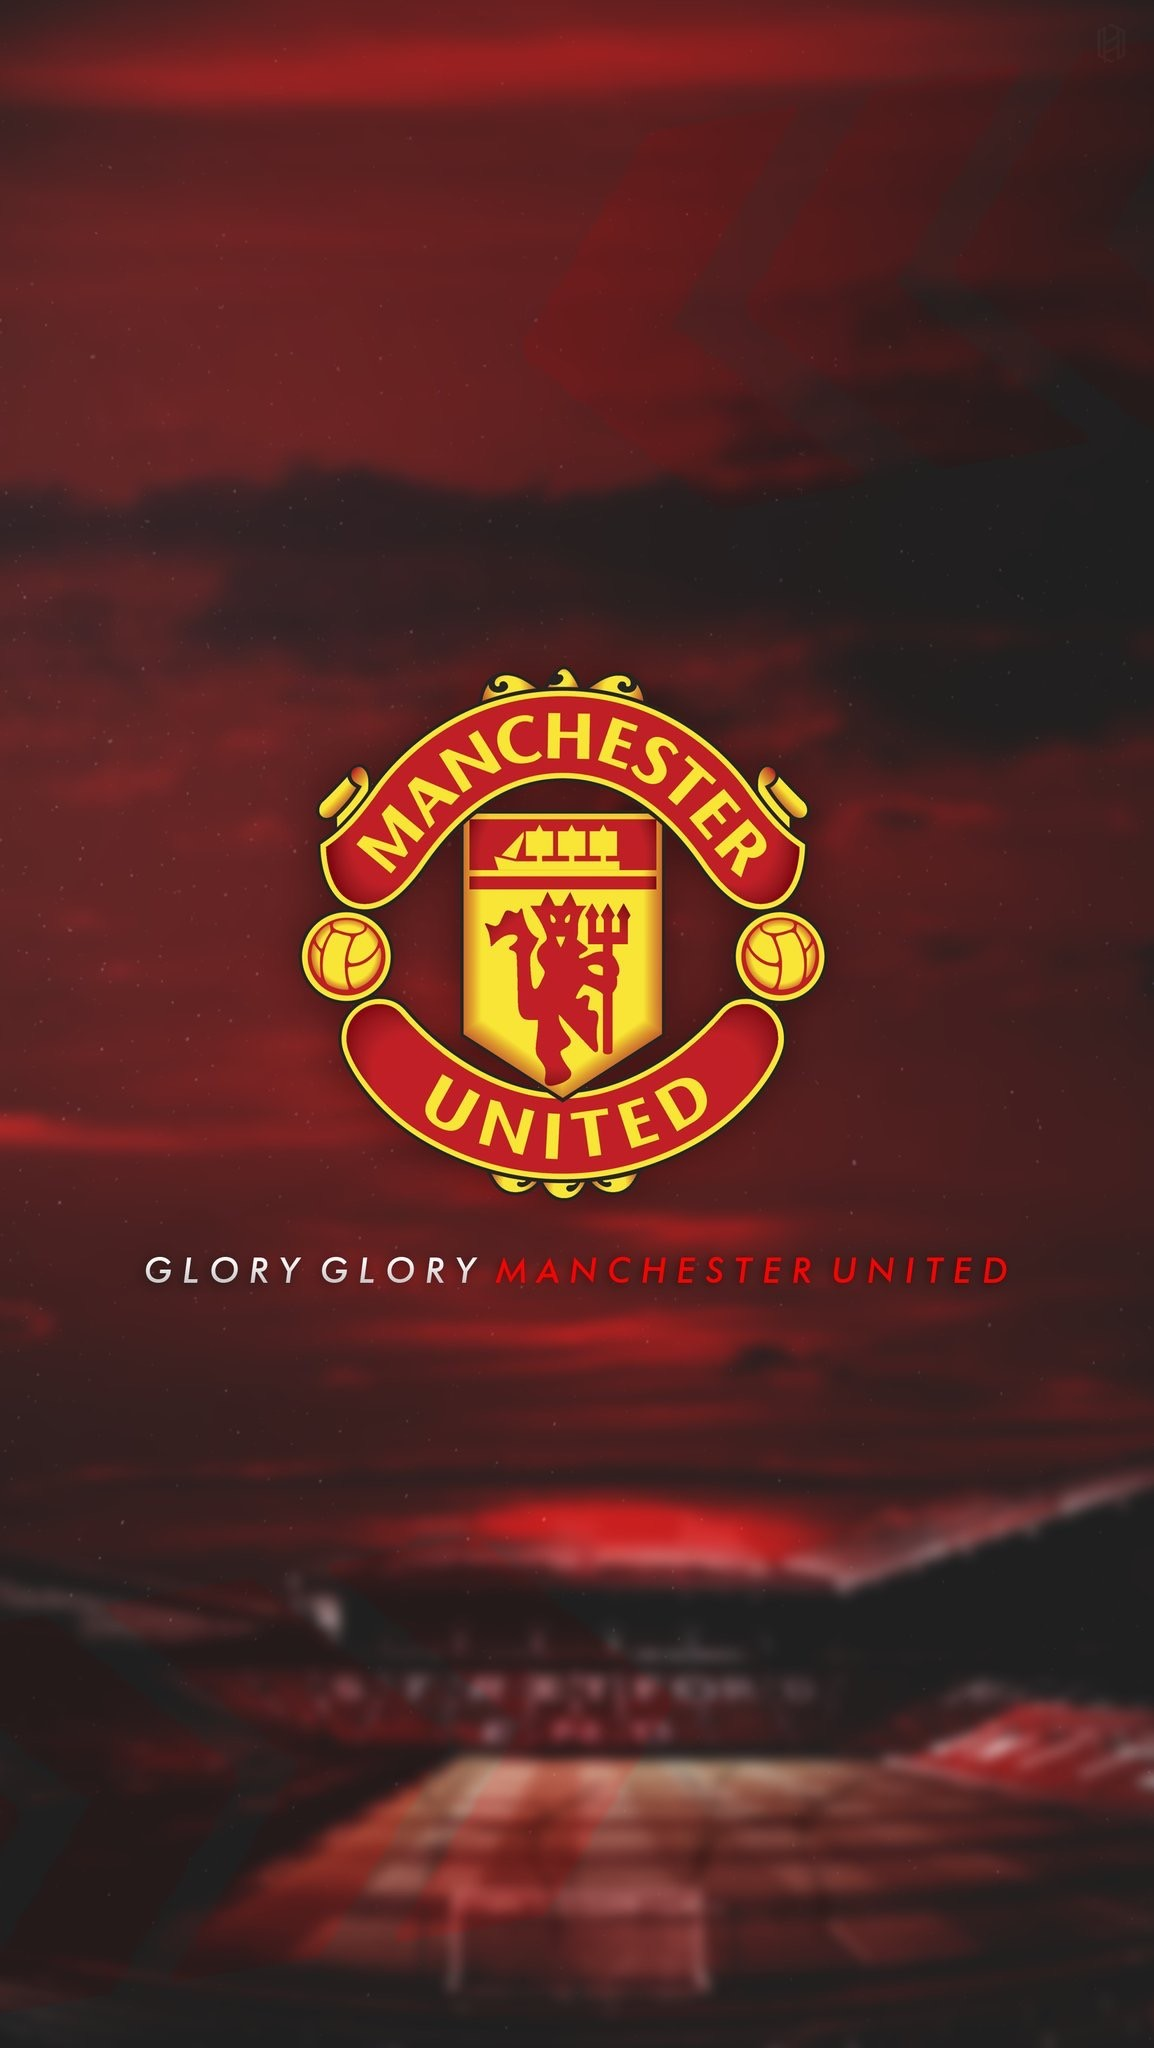 Arsenal Iphone Wallpaper Hd Manchester United Wallpaper 2018 71 Images